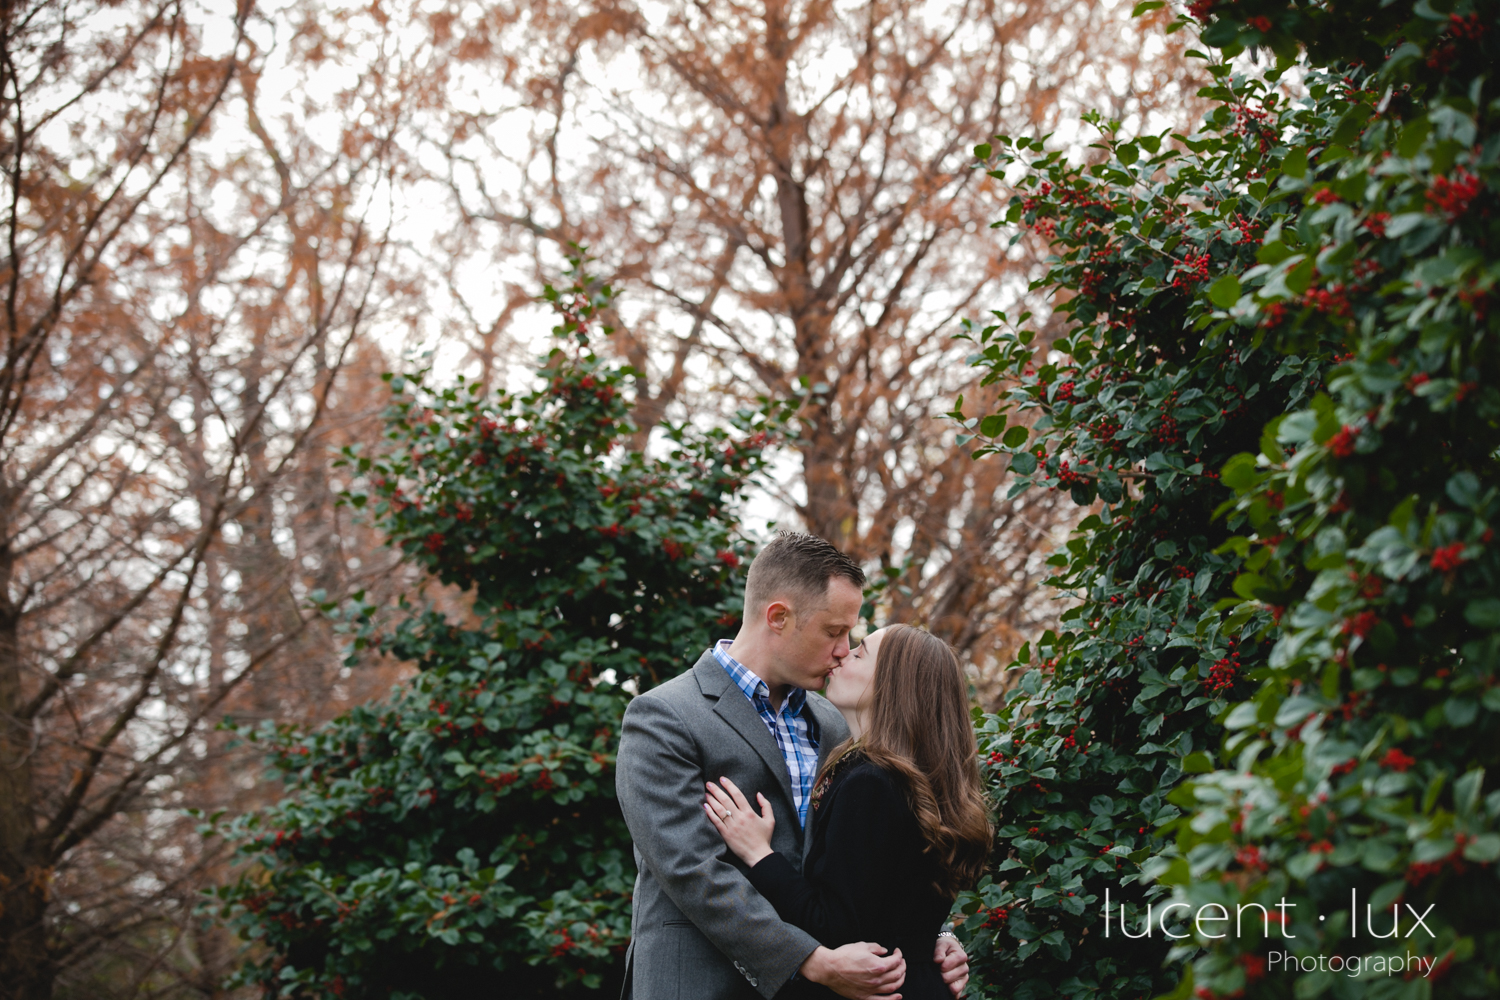 Fort-McHenry-Engagement-Photography-Maryland-Photographer-Baltimore-109.jpg